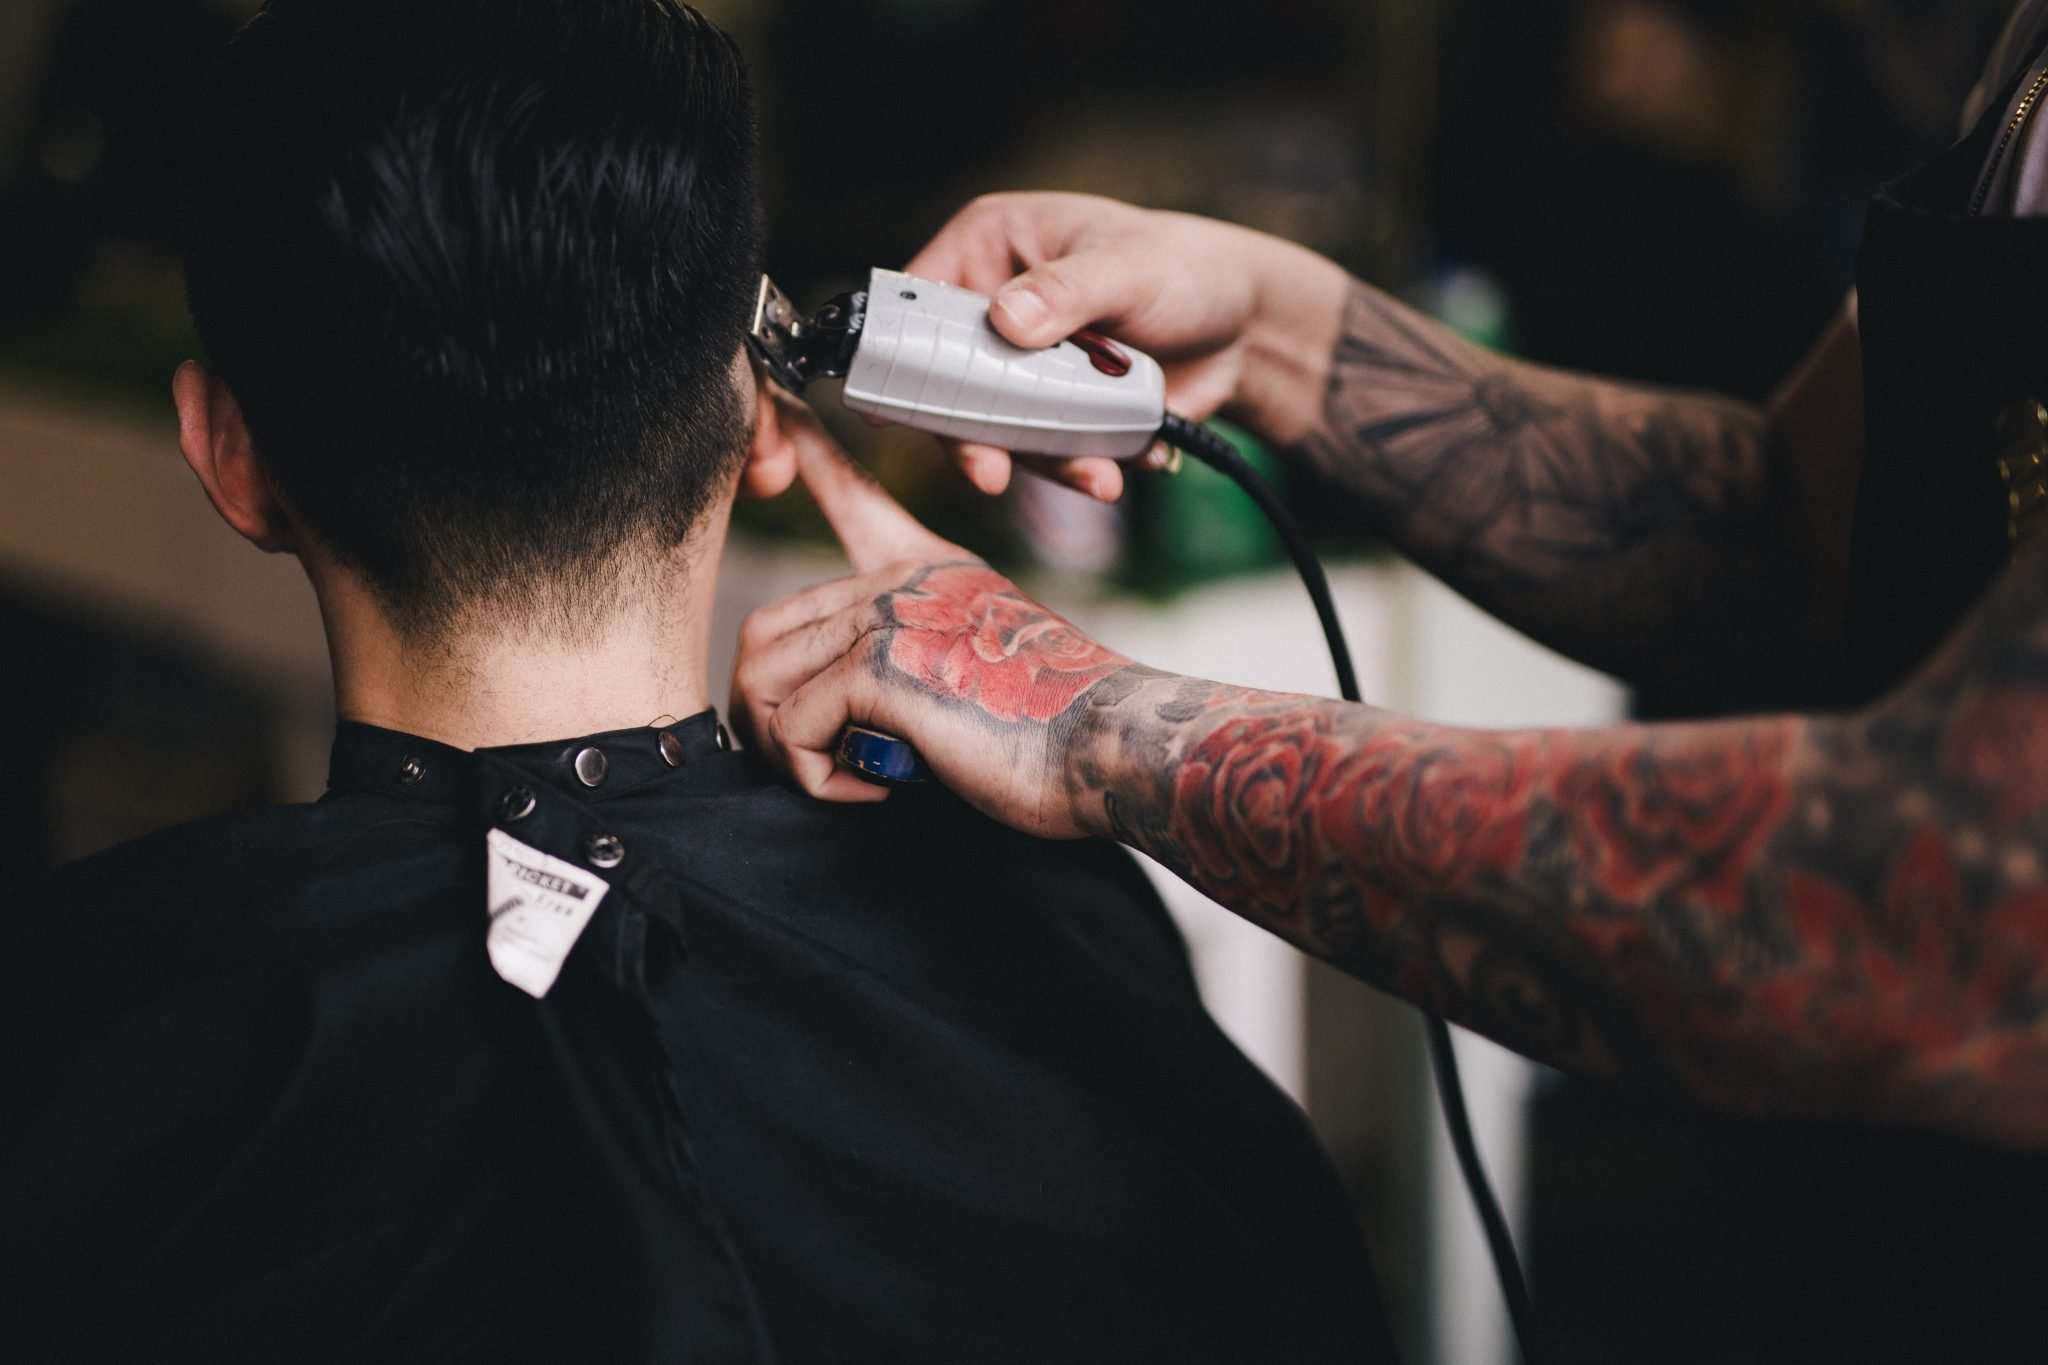 Jury's finding that barbers were independent contractors can stand, 11th Cir. says